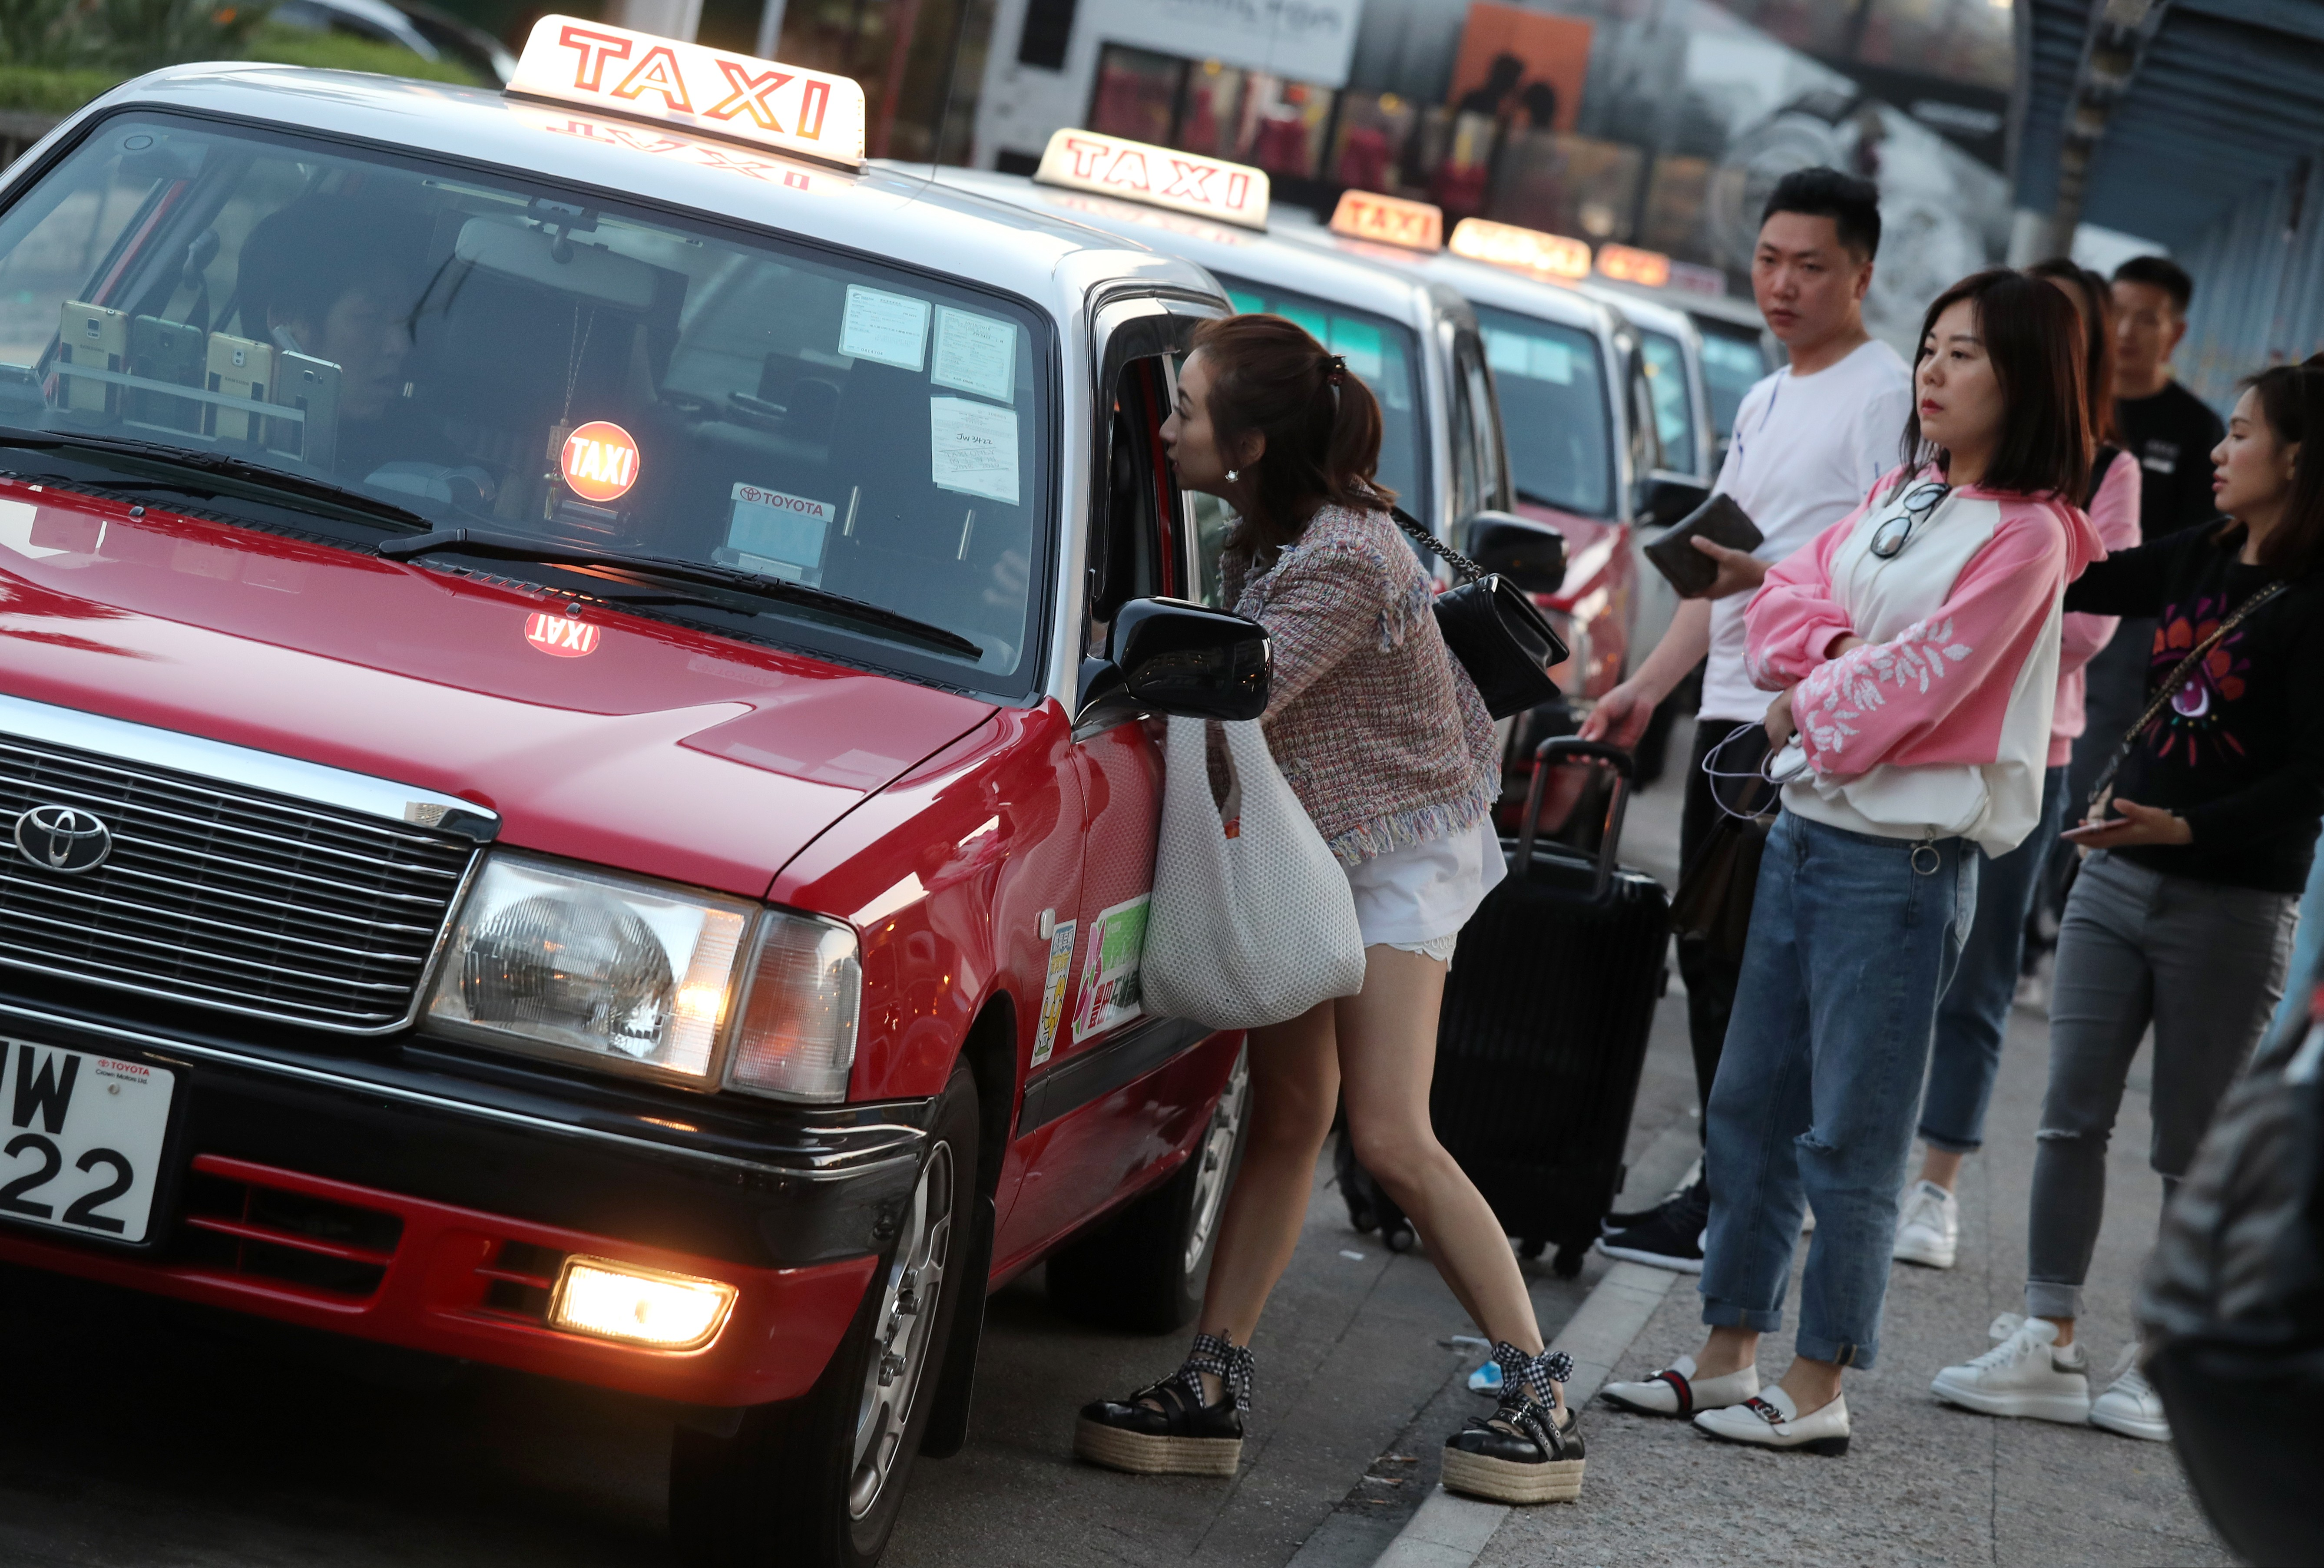 Faced with Uber challenge, Hong Kong taxis look to boost image and